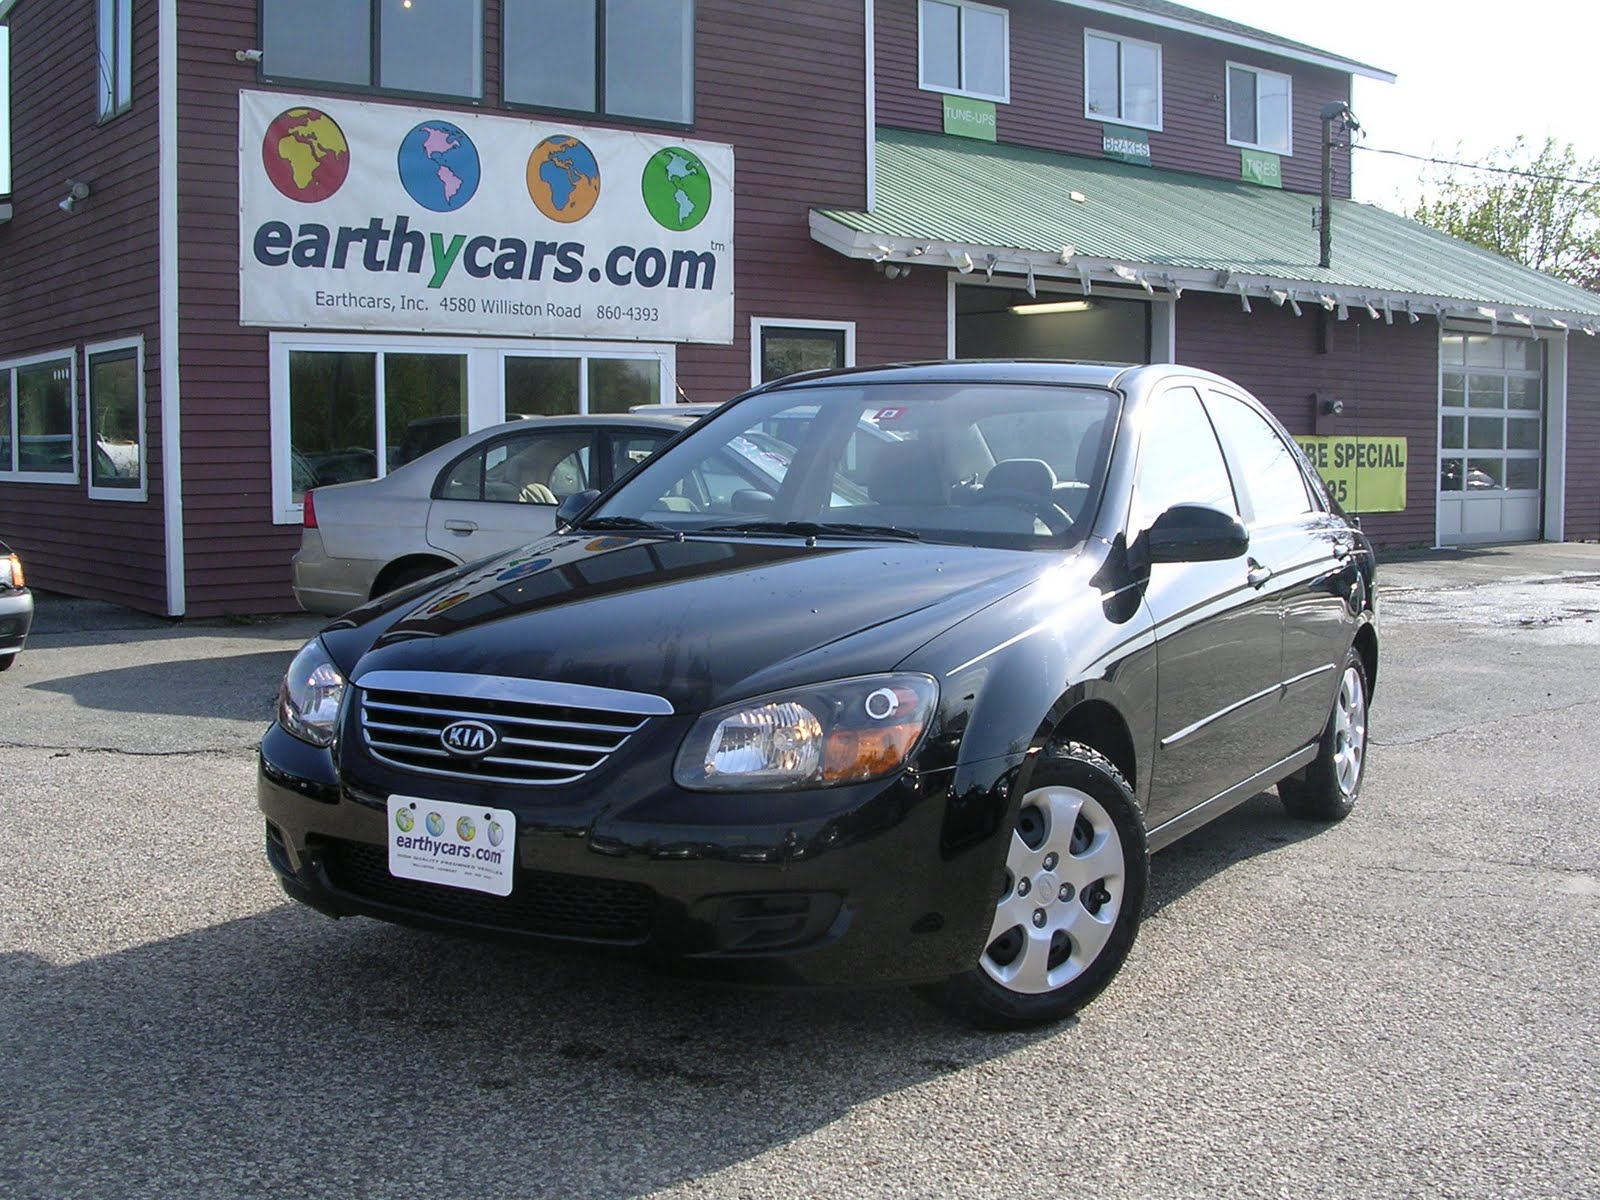 Earthy Cars Blog  EARTHY CAR OF THE WEEK  2009 Blue Kia Spectra